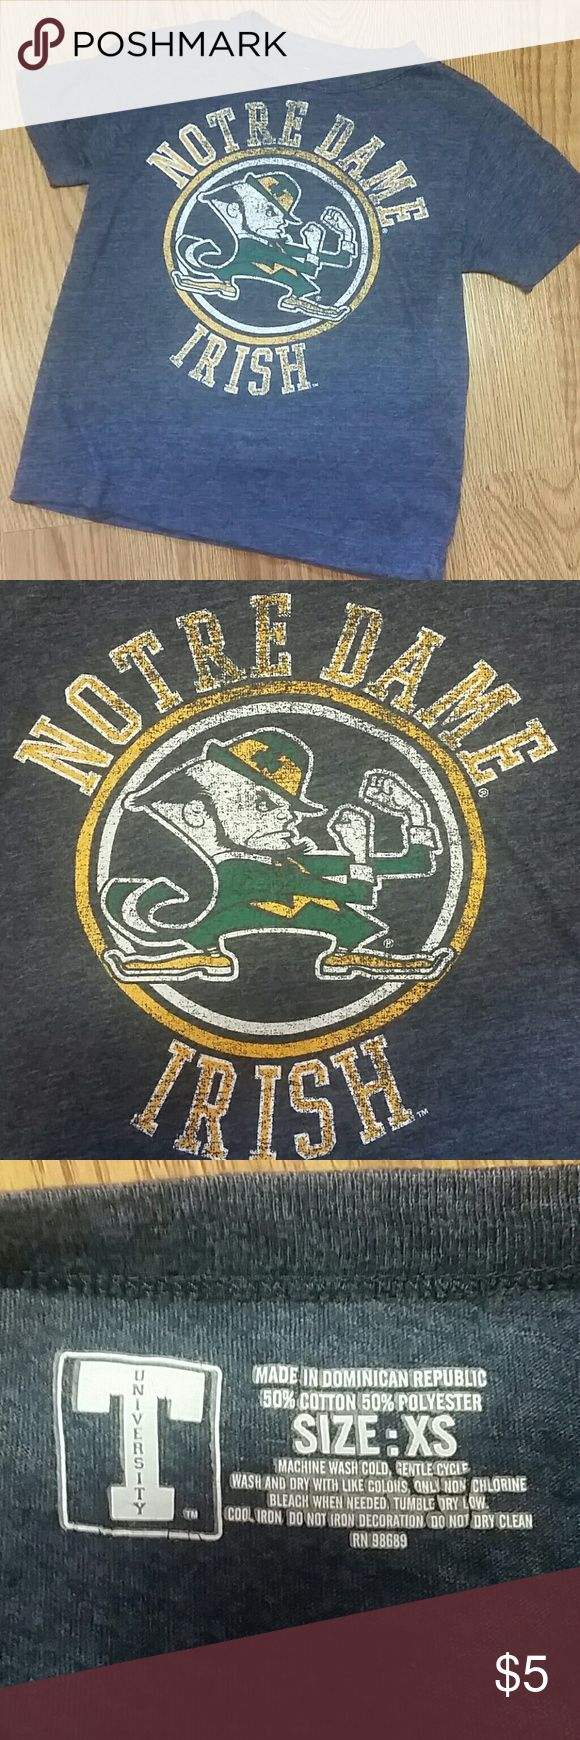 Notre Dame t-shirt Show your game pride!! Very comfortable Notre Dame t-shirt still in good condition. Size XS Shirts & Tops Tees - Short Sleeve